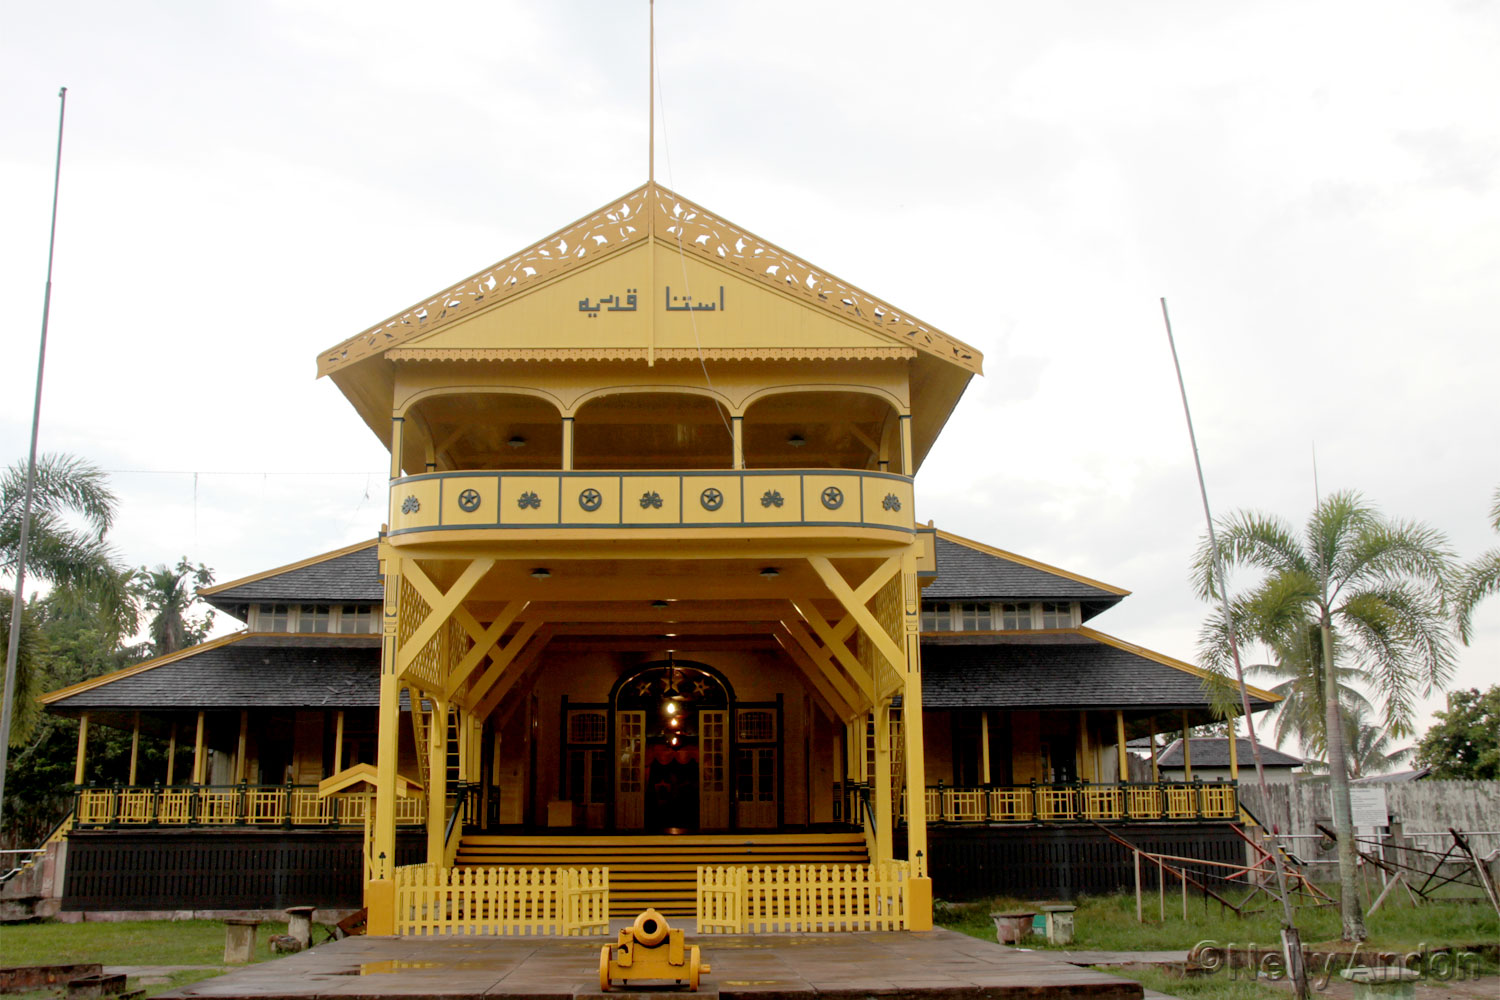 Borneo Adventure – Pontianak, The golden kingdom